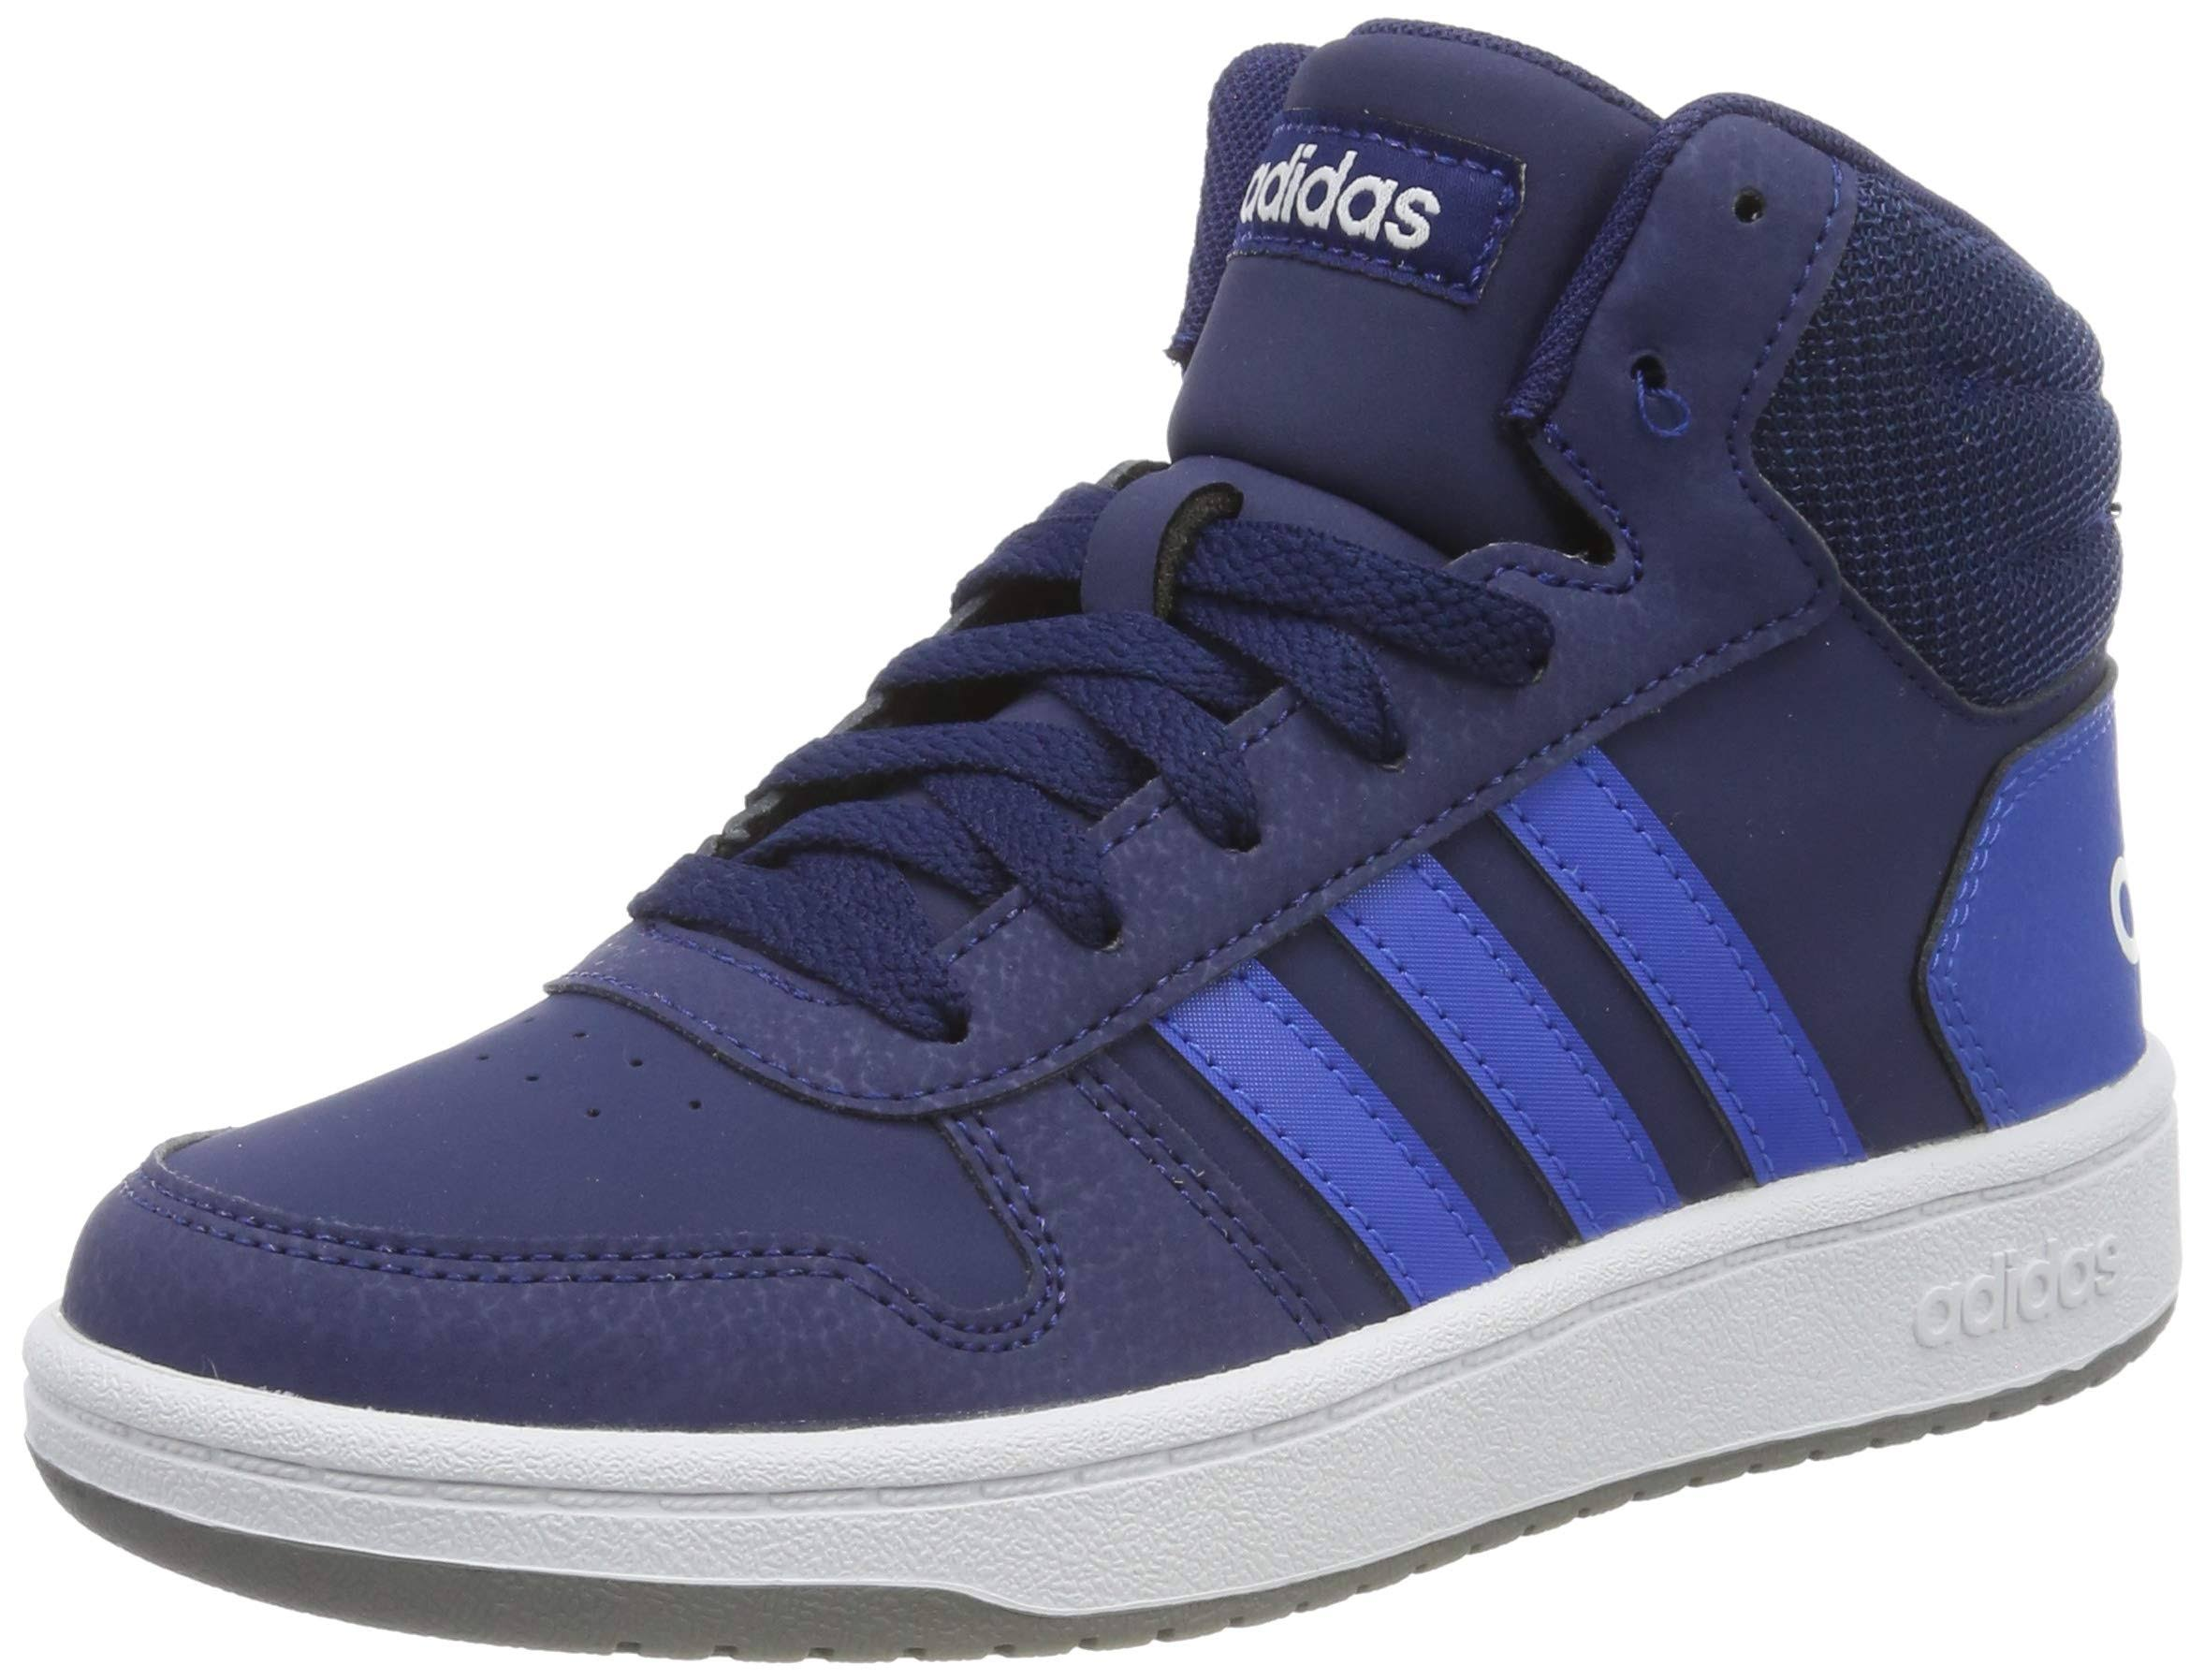 Adidas Hoops 2.0 Mid Shoes - Blue - Kids